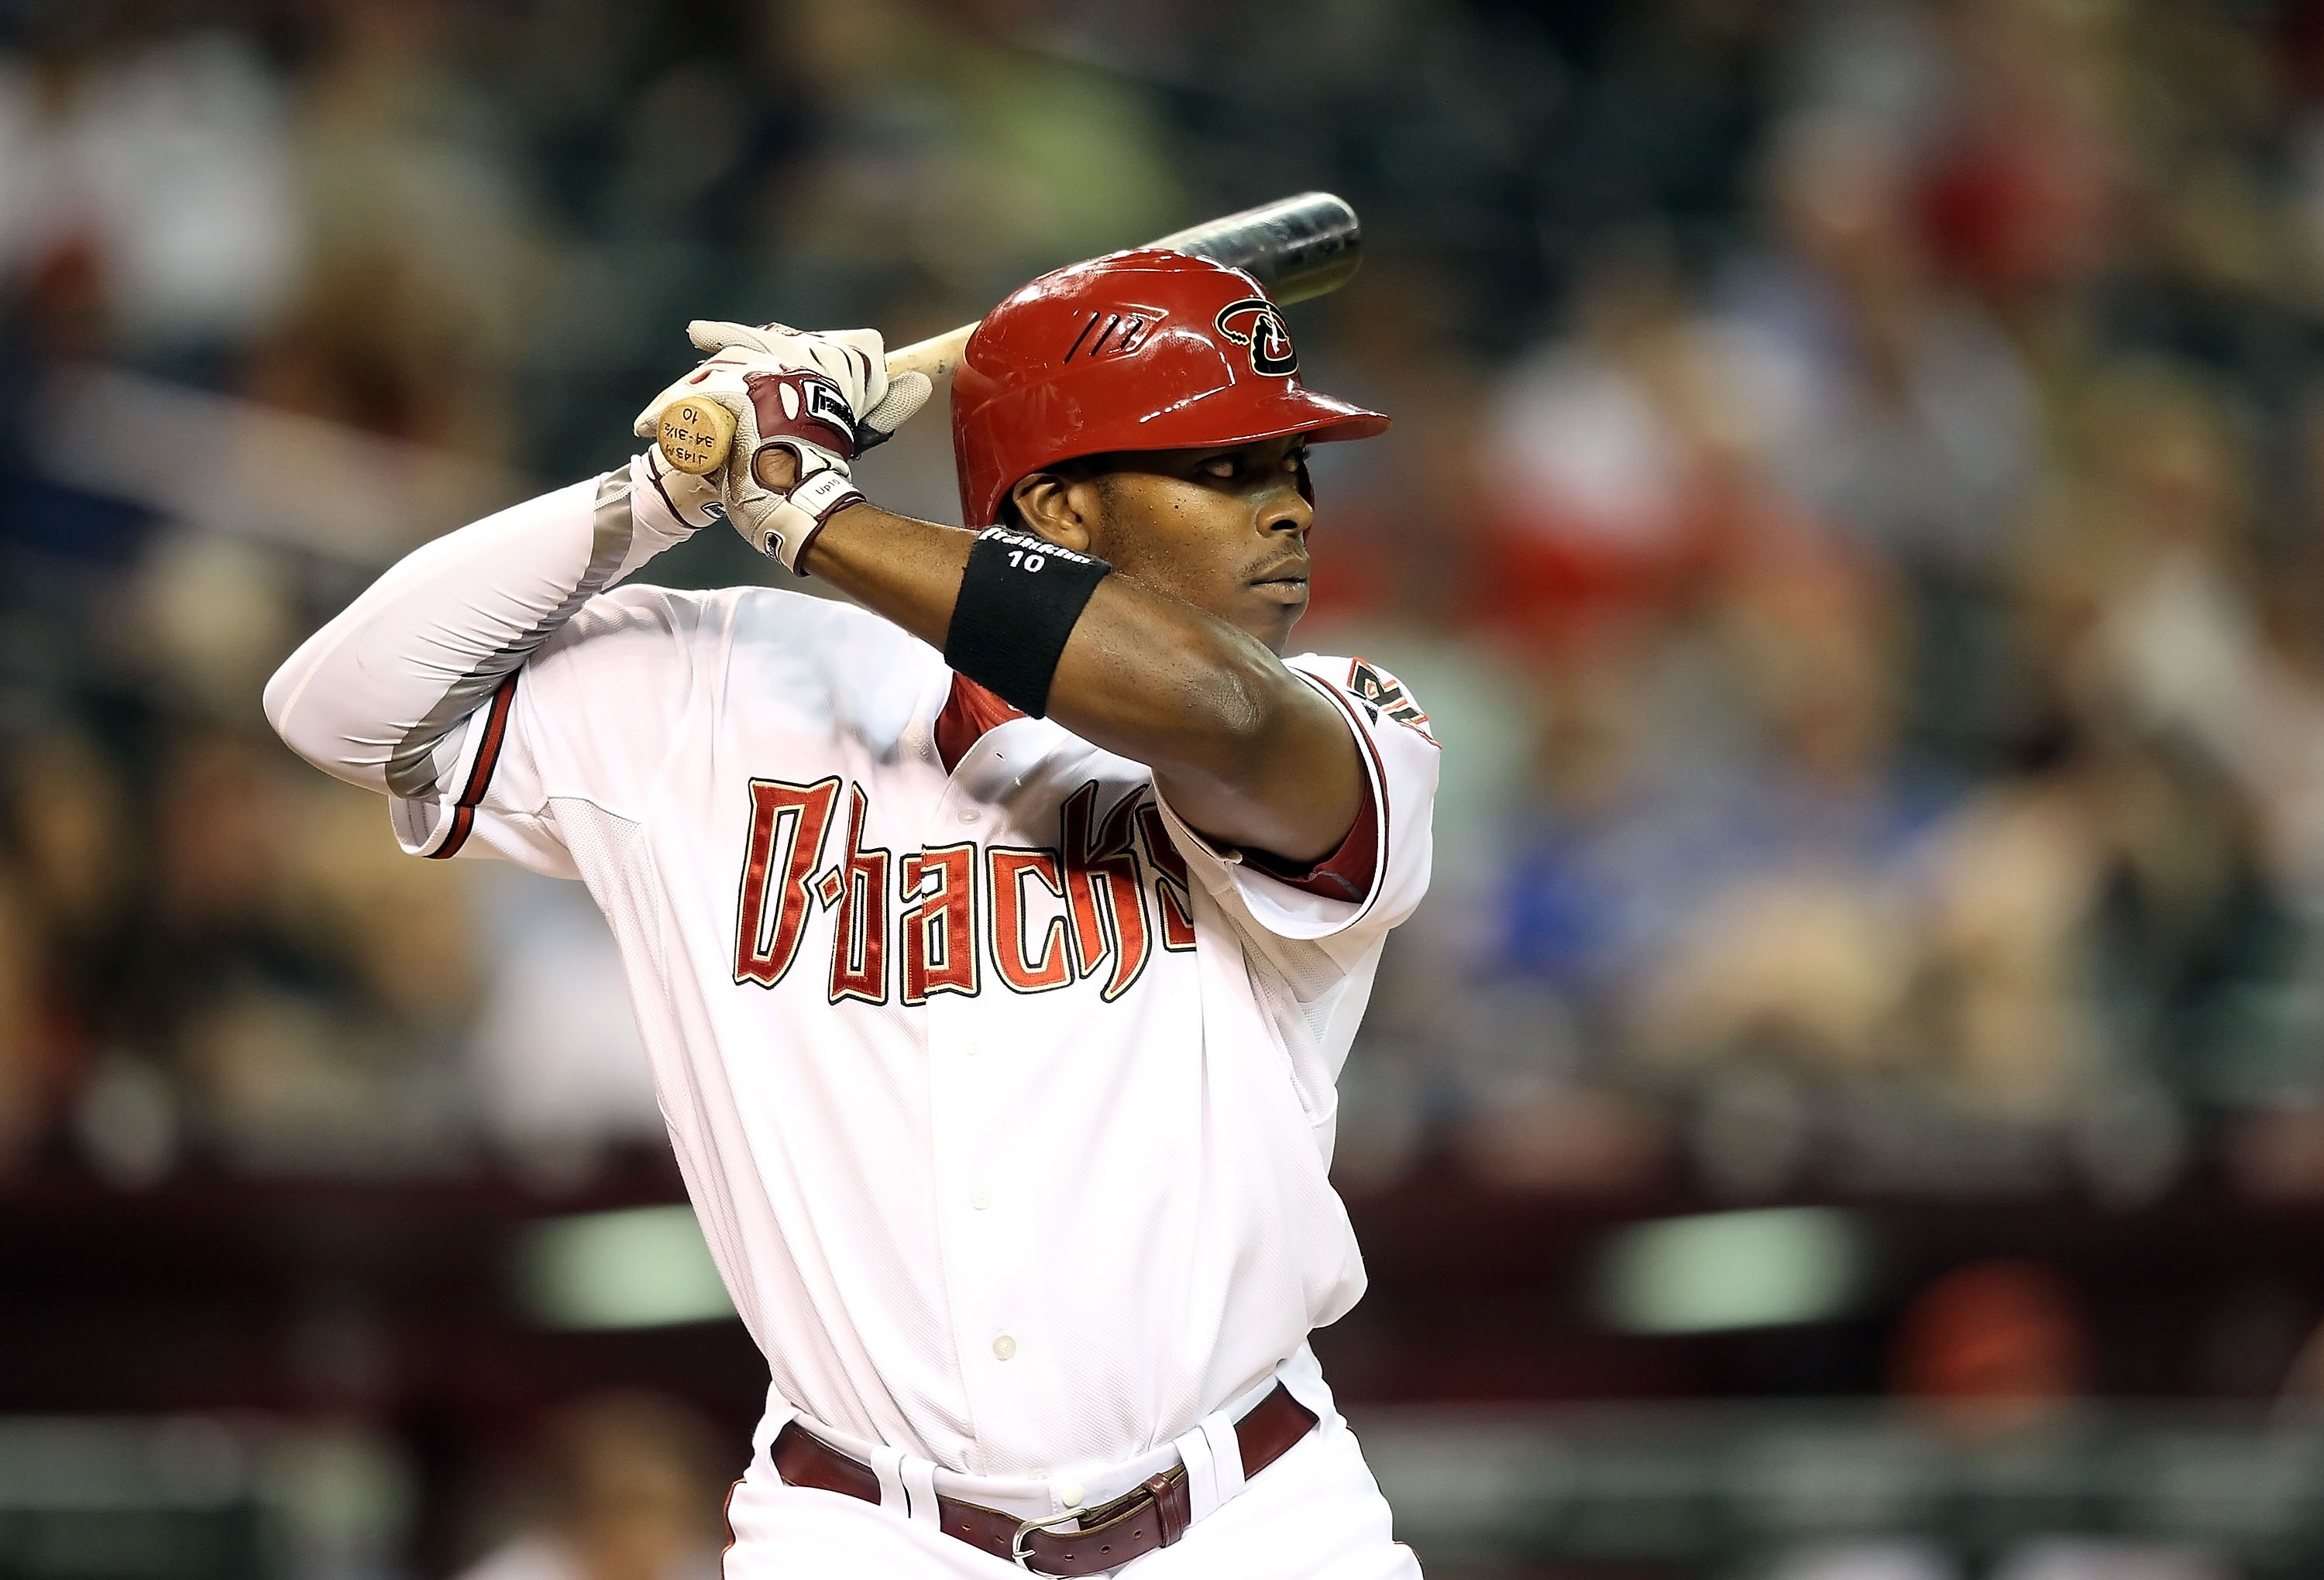 PHOENIX - JUNE 11:  Justin Upton #10 of the Arizona Diamondbacks bats against the St. Louis Cardinals during the Major League Baseball game at Chase Field on June 11, 2010 in Phoenix, Arizona. The Cardinals defeated the Diamondbacks 5-2.  (Photo by Christ